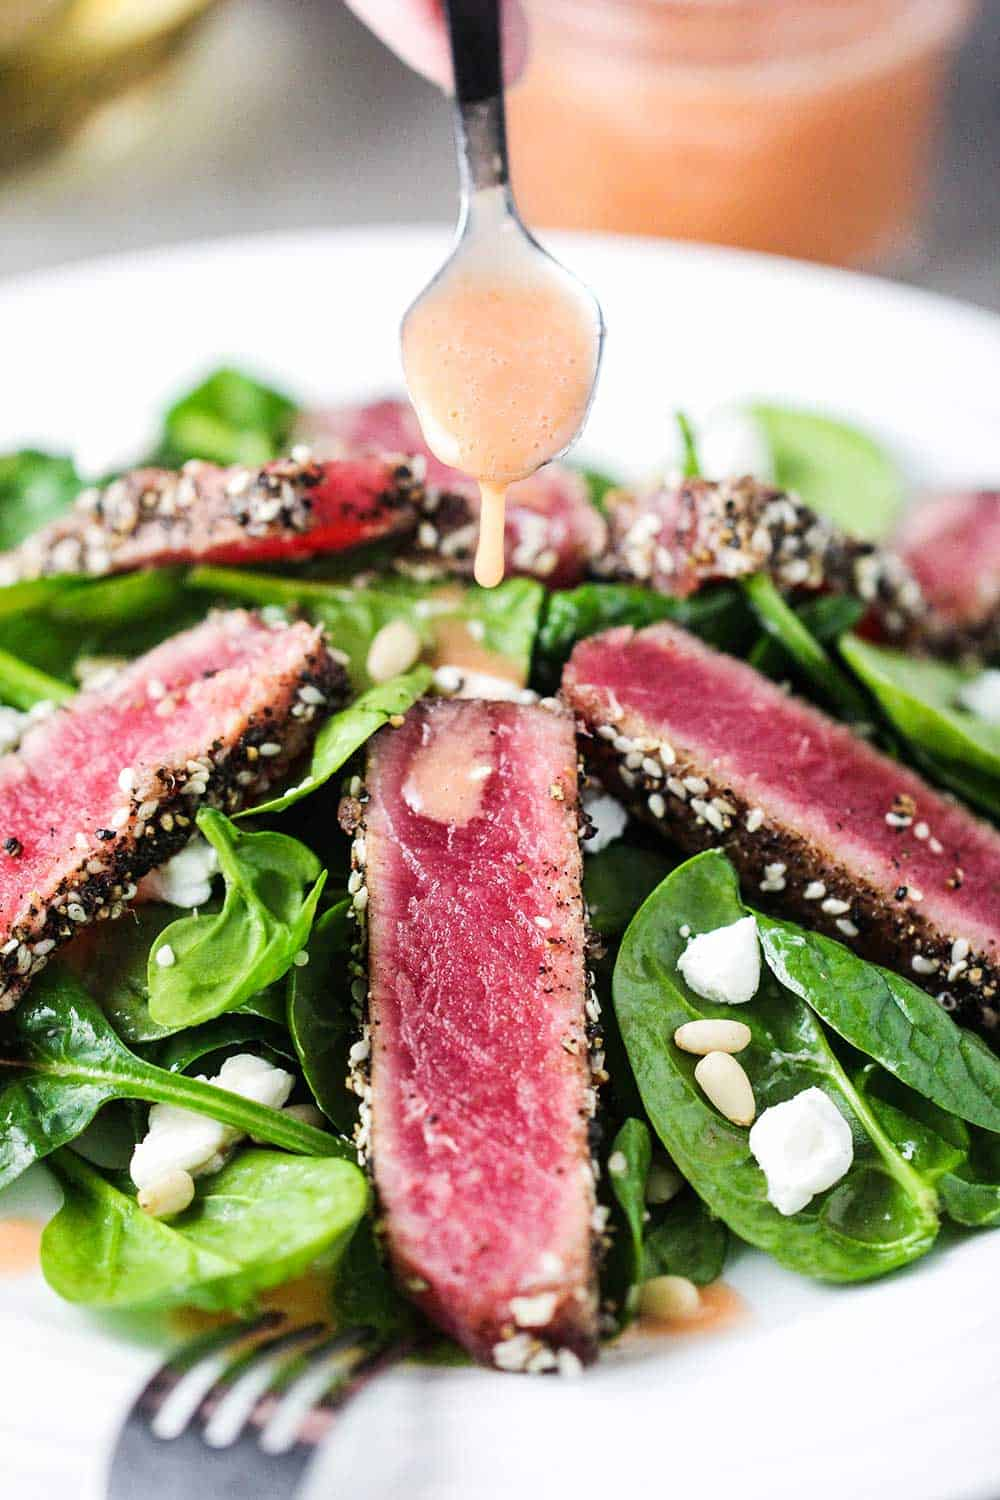 A spoon pouring strawberry vinaigrette over strips of seared tuna steaks on top of a spinach salad on a white plate.